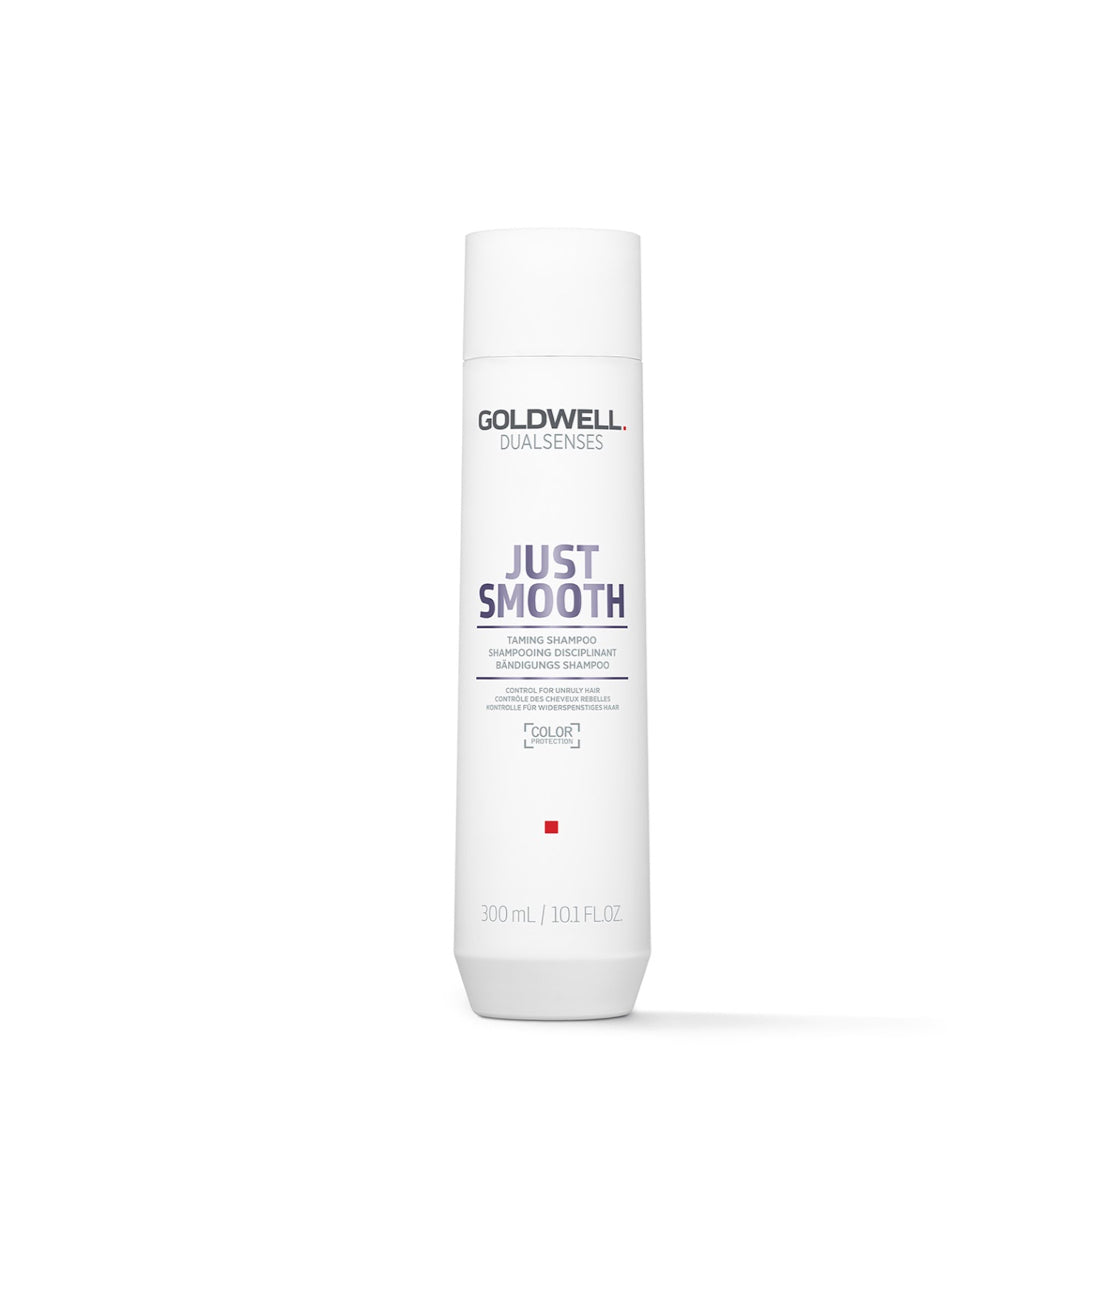 Dualsenses Just Smooth Taming Shampoo. (300ml)